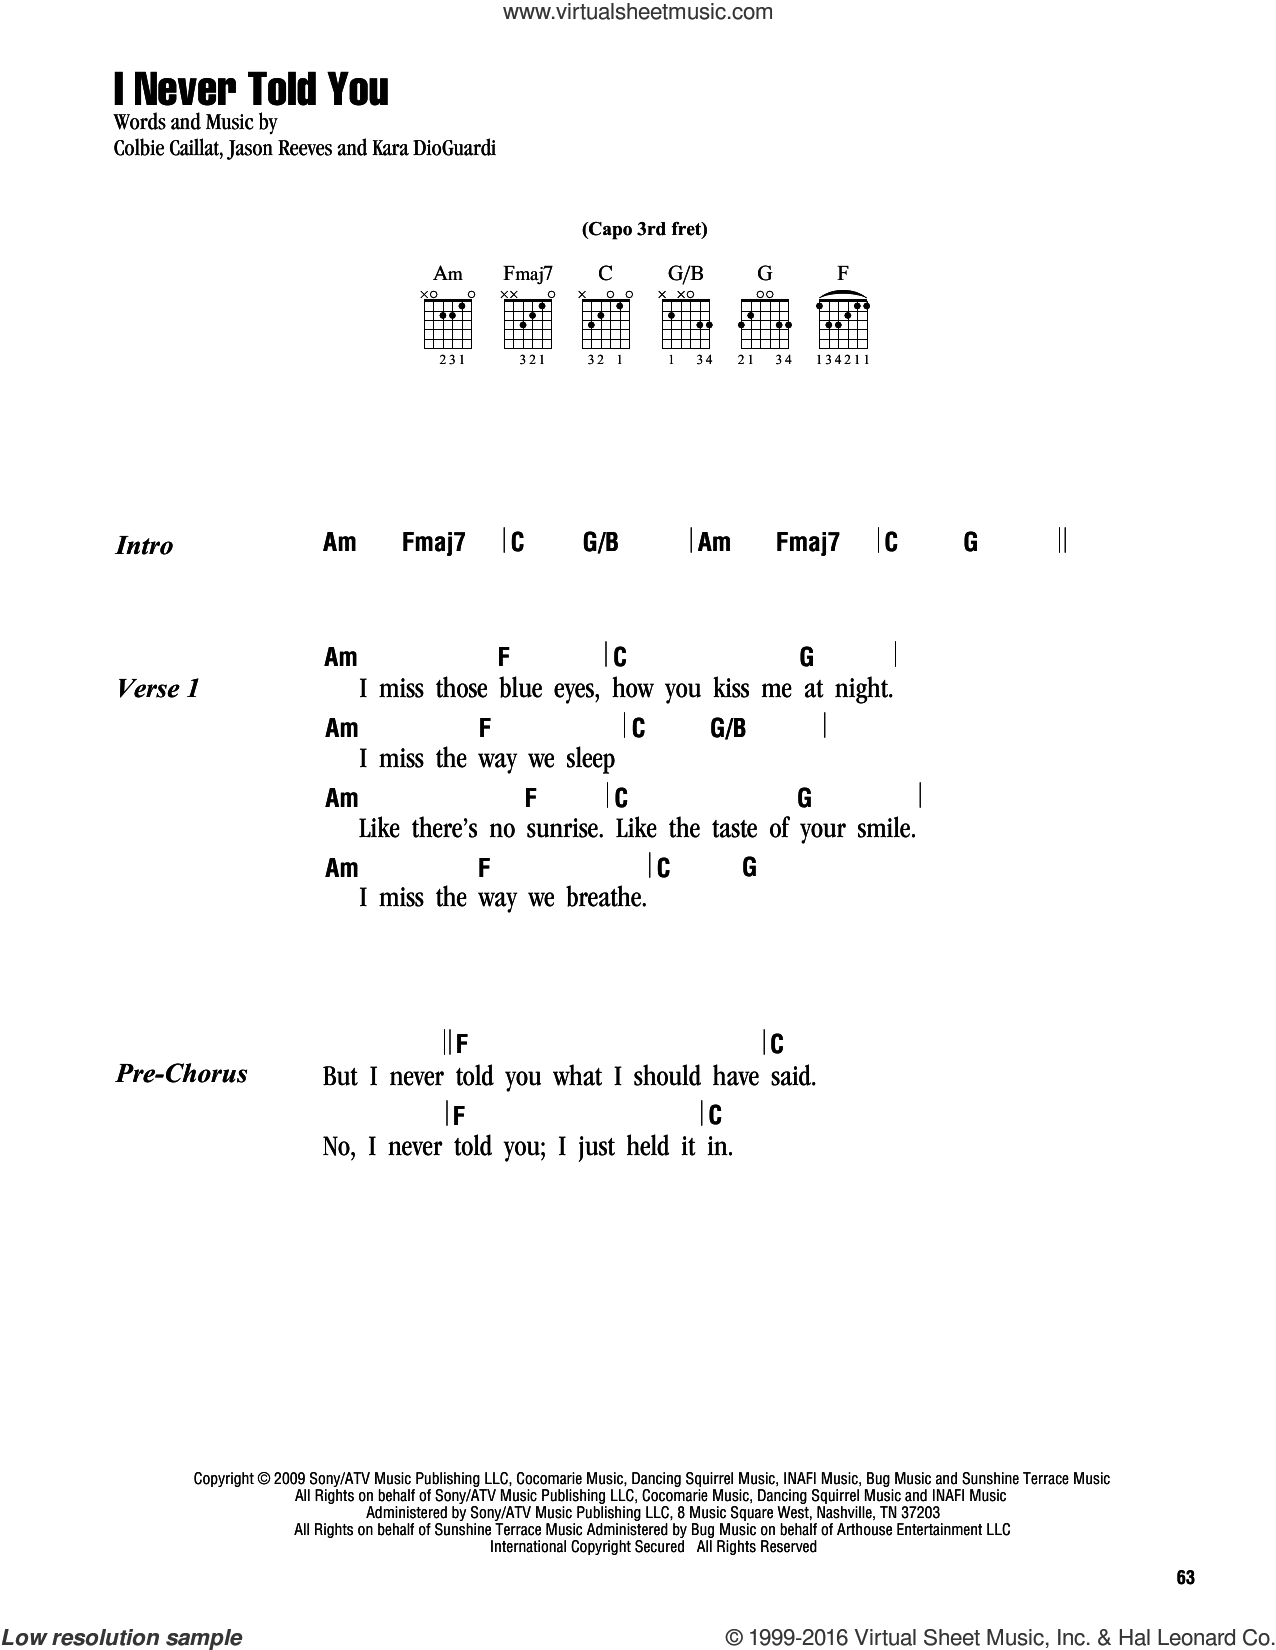 I Never Told You sheet music for guitar (chords) by Colbie Caillat, Jason Reeves and Kara DioGuardi, intermediate skill level